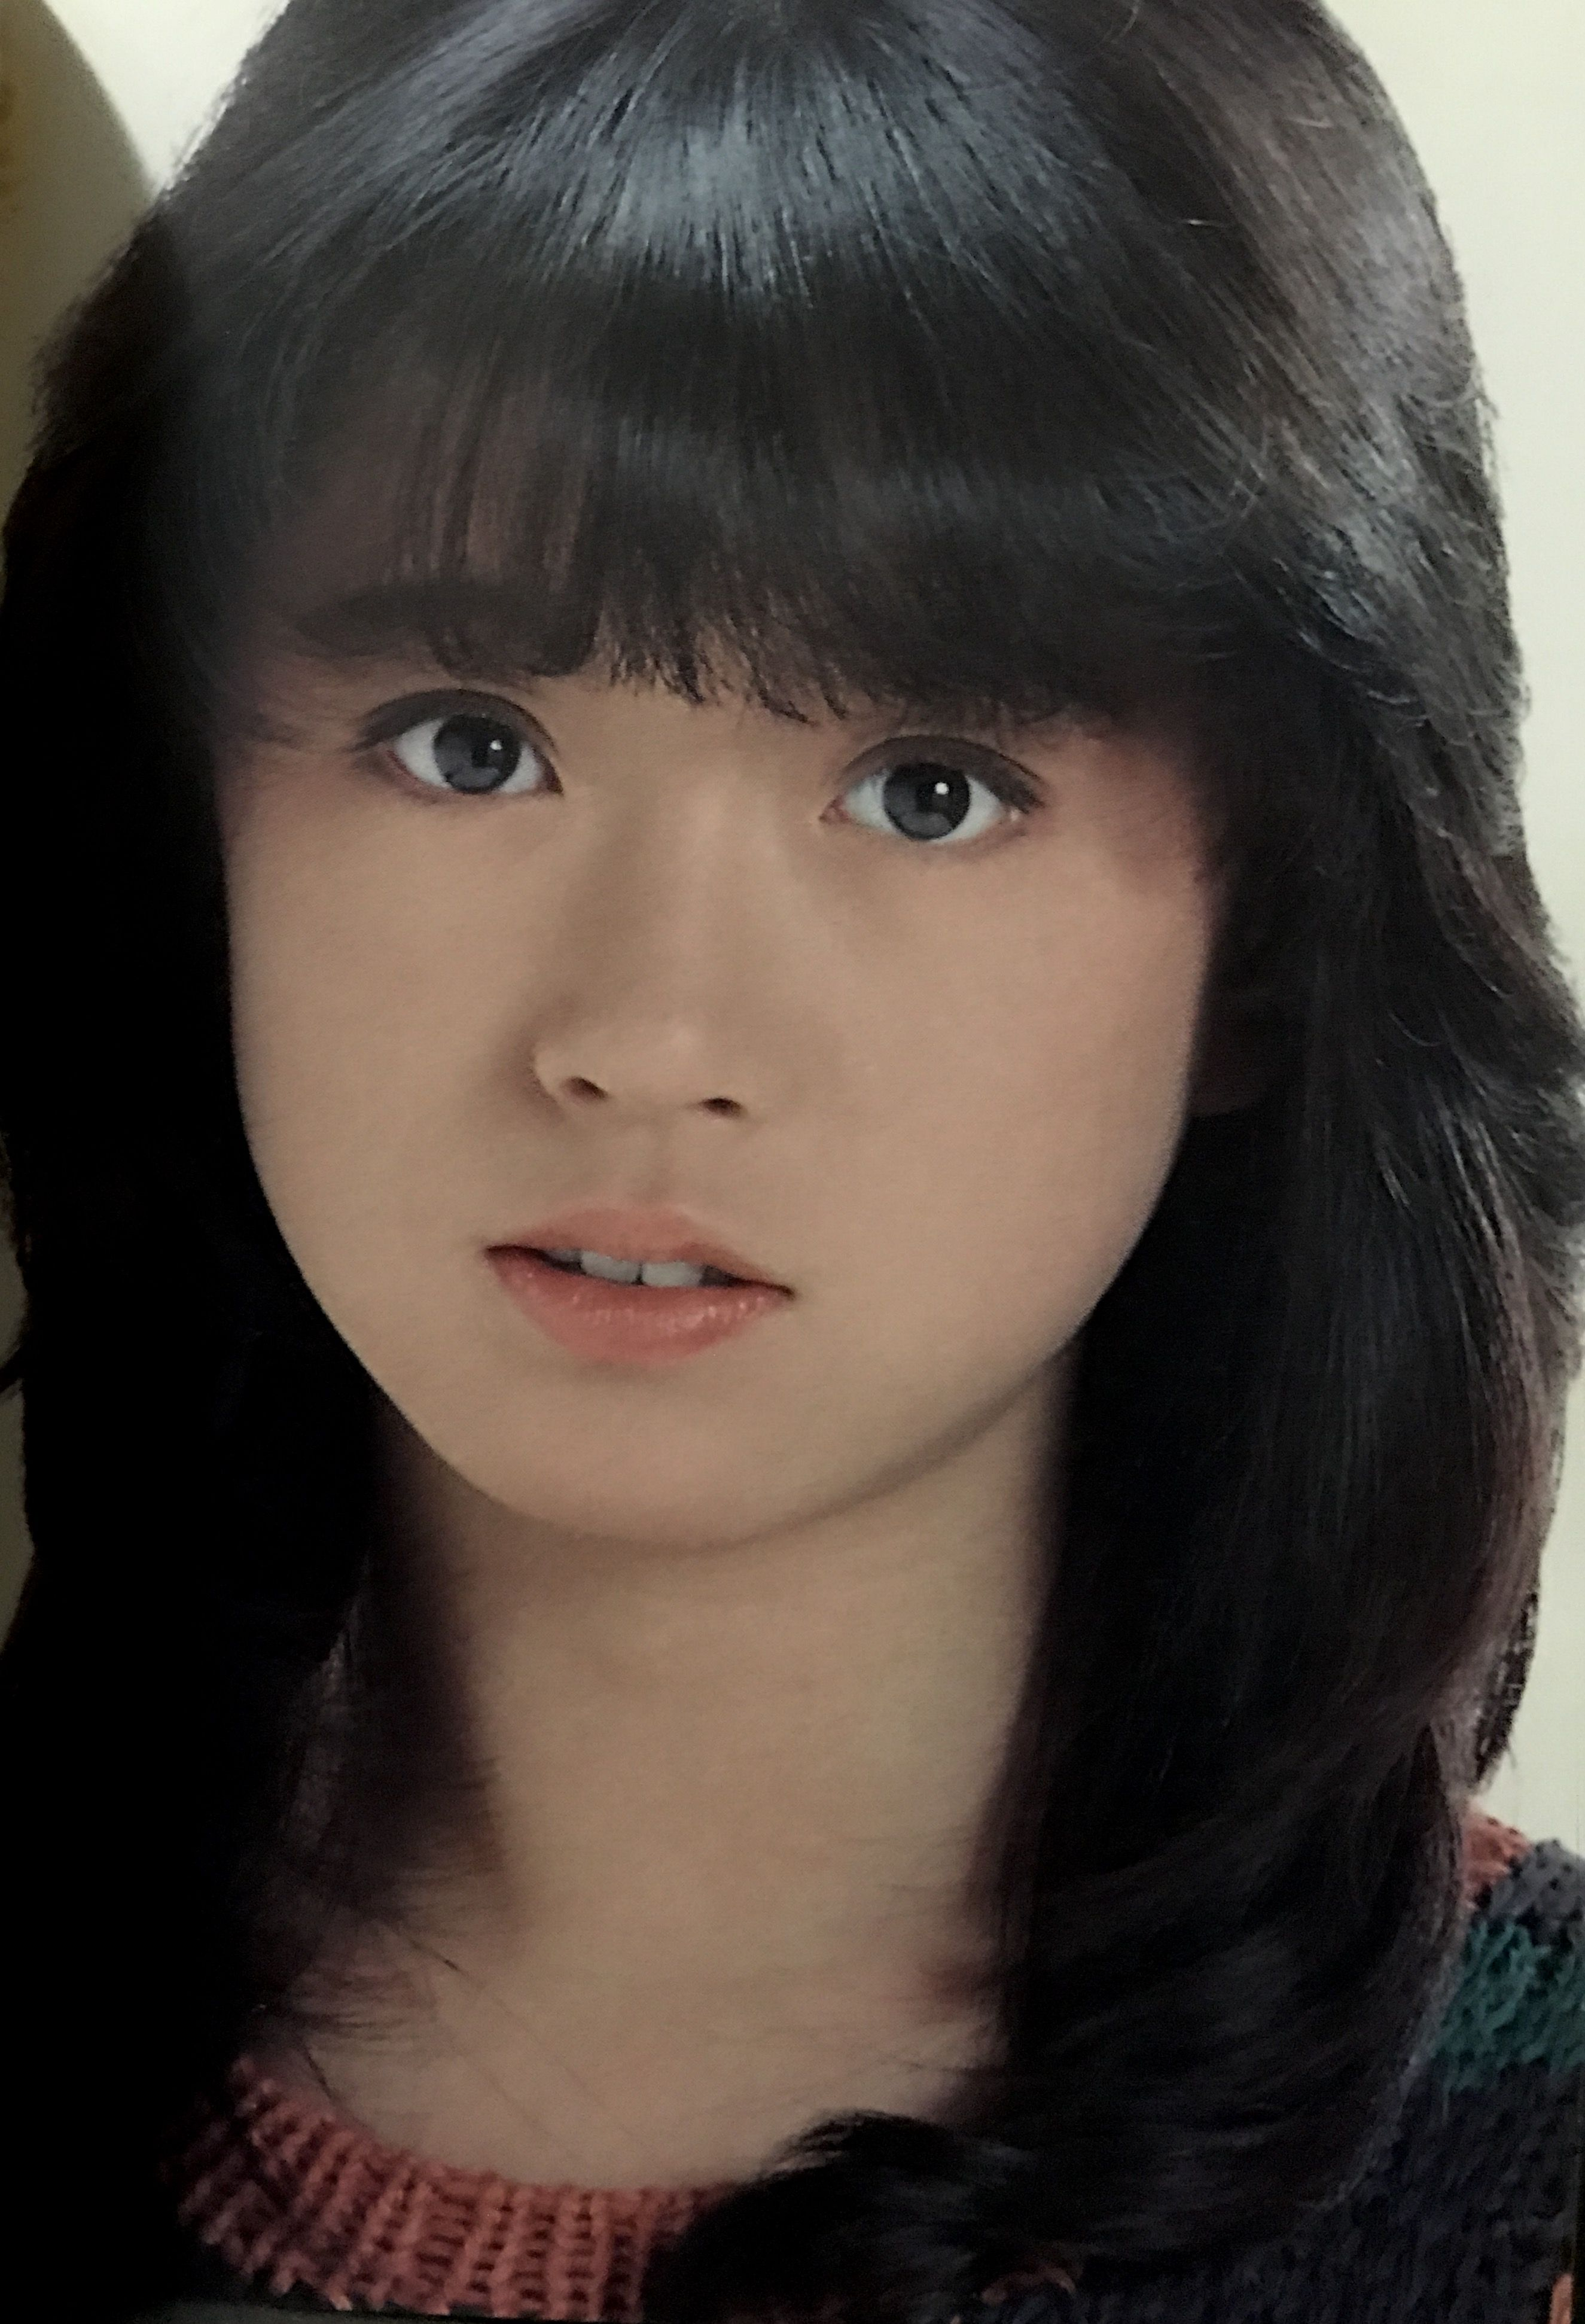 Pin By Volex On Akina 中森明菜 Pinterest Idol Actresses